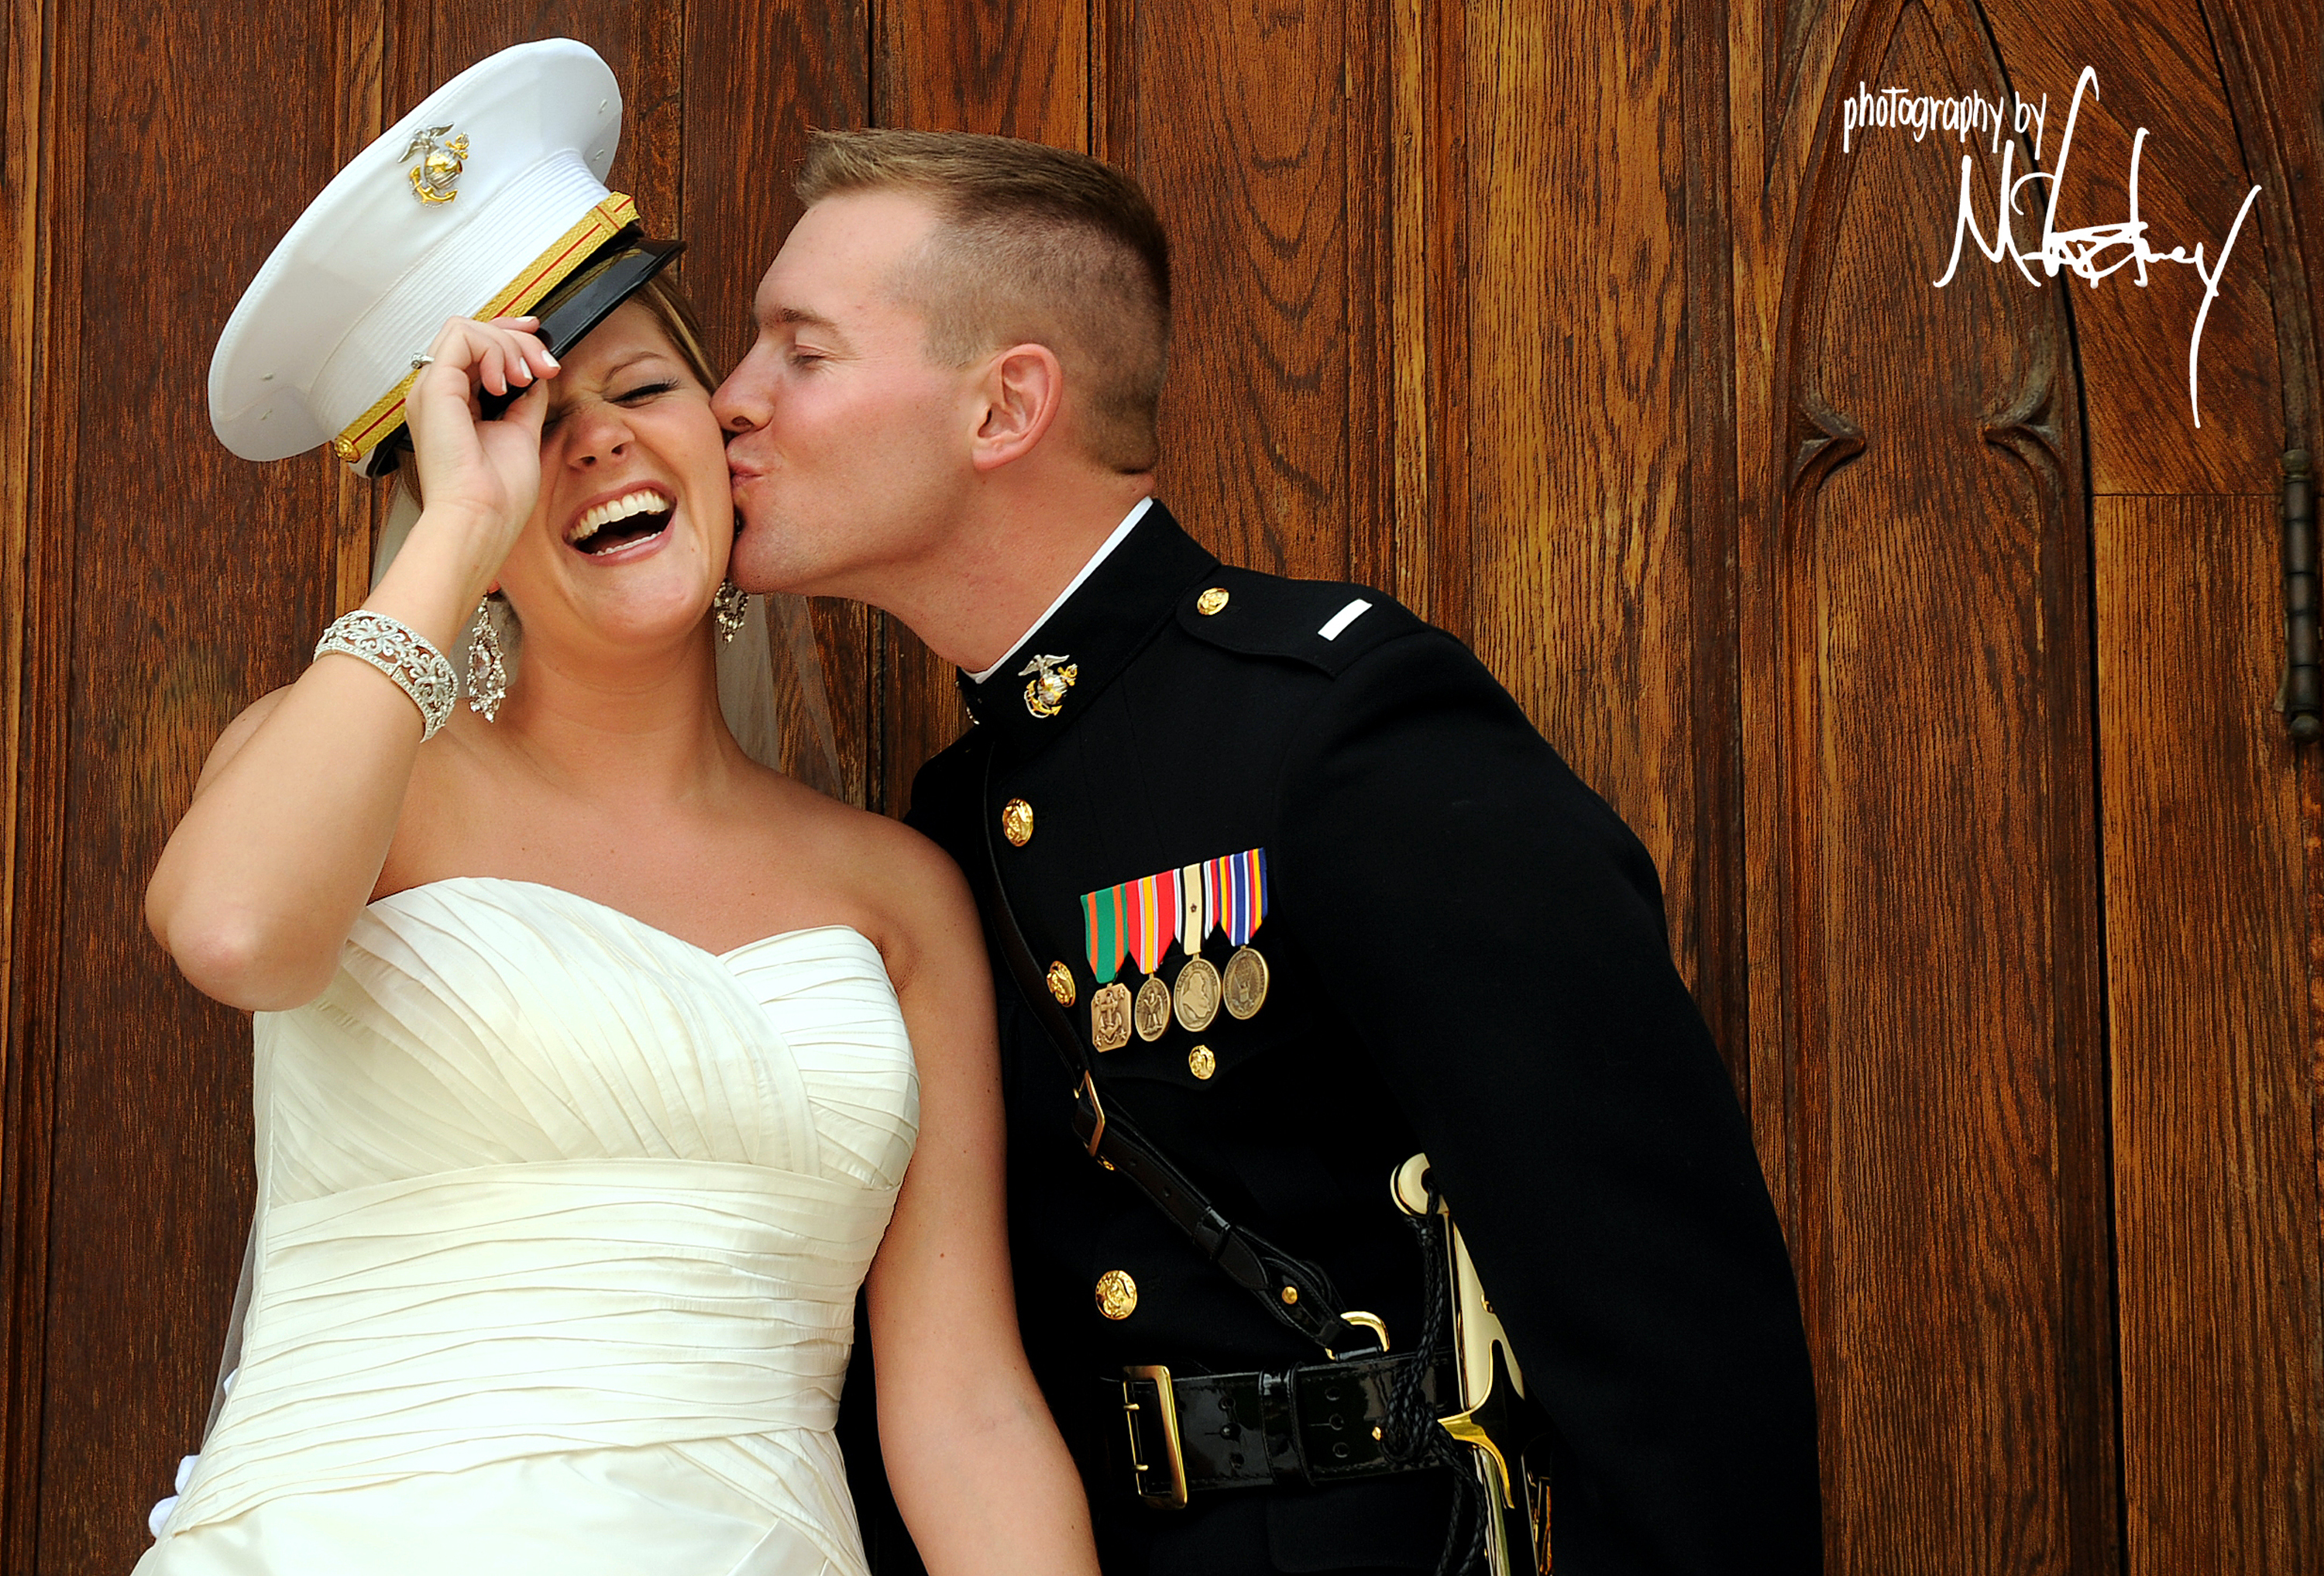 Wedding Dresses, Fashion, white, blue, green, dress, Bride, Groom, Kiss, Military, Military wedding, Minnesota, Marine, Marines, Fall wedding, Mn, Photography by mccartney